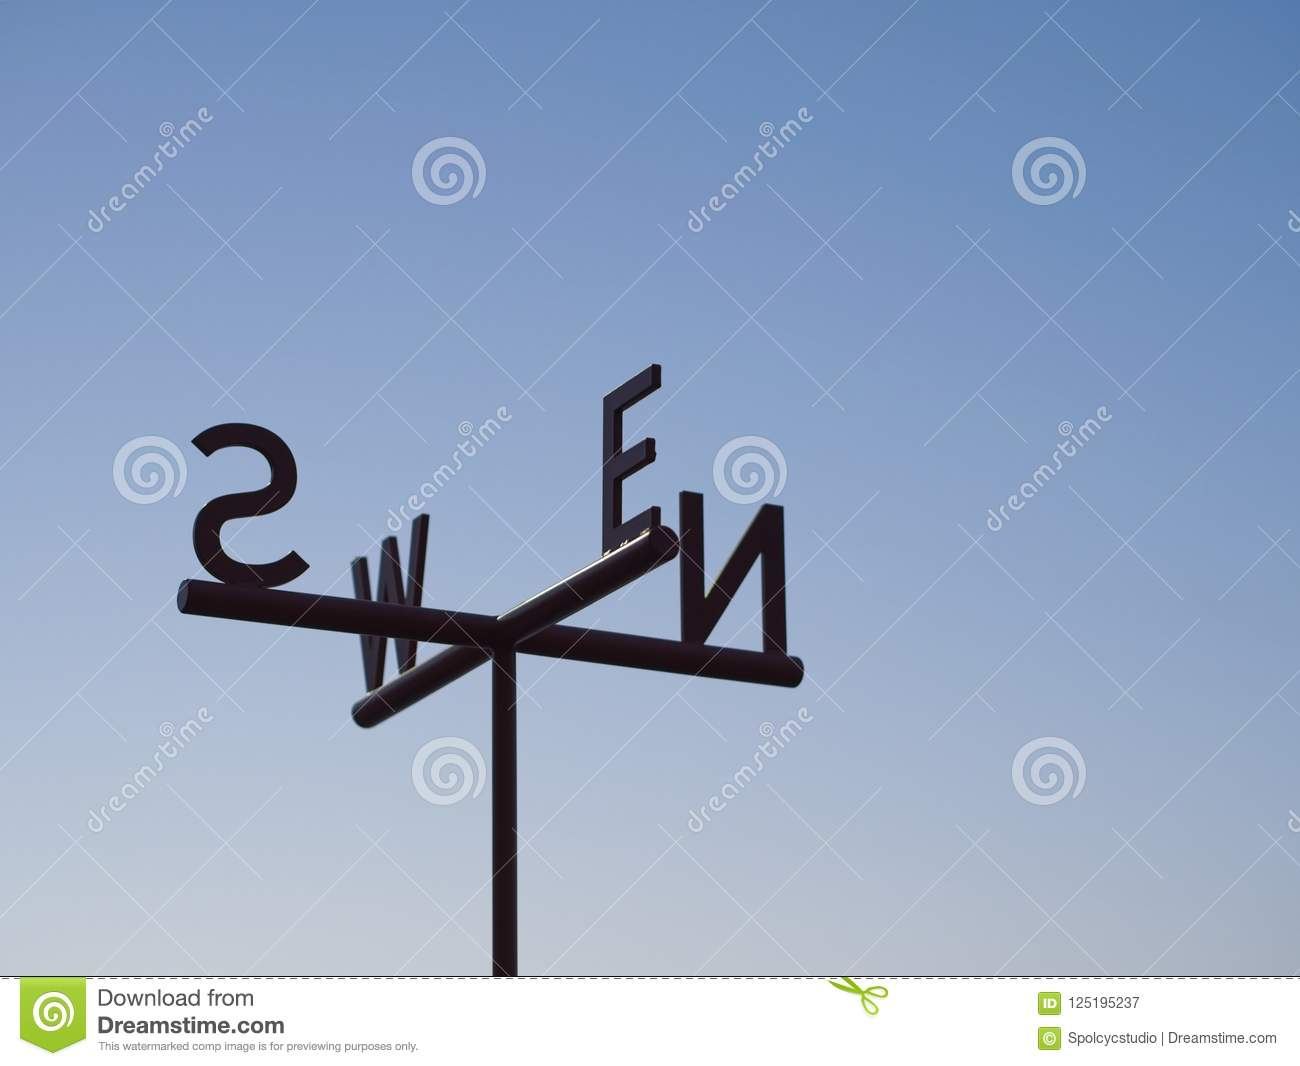 Cardinal Direction Direction pointer Sign against blue sky